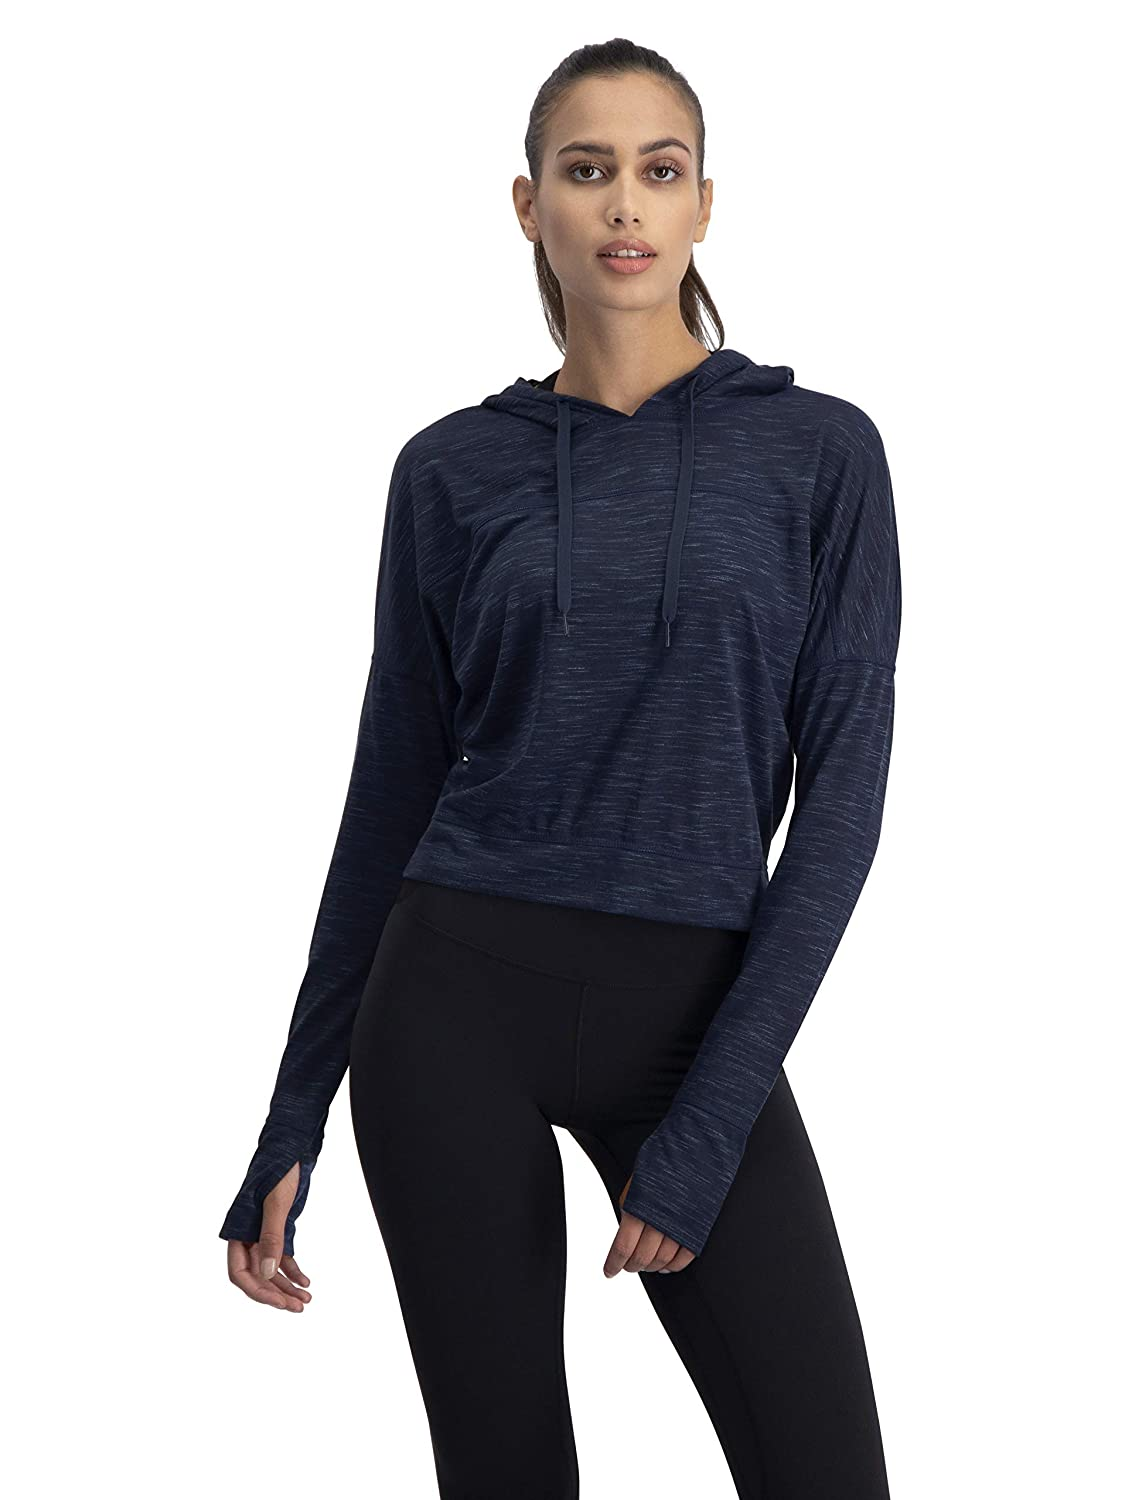 8e2e04765c9bb Dry Fit Crop Tops for Women - Long Sleeve Crop Top Hoodie - Women's Workout  Pullover Top with Thumb Holes